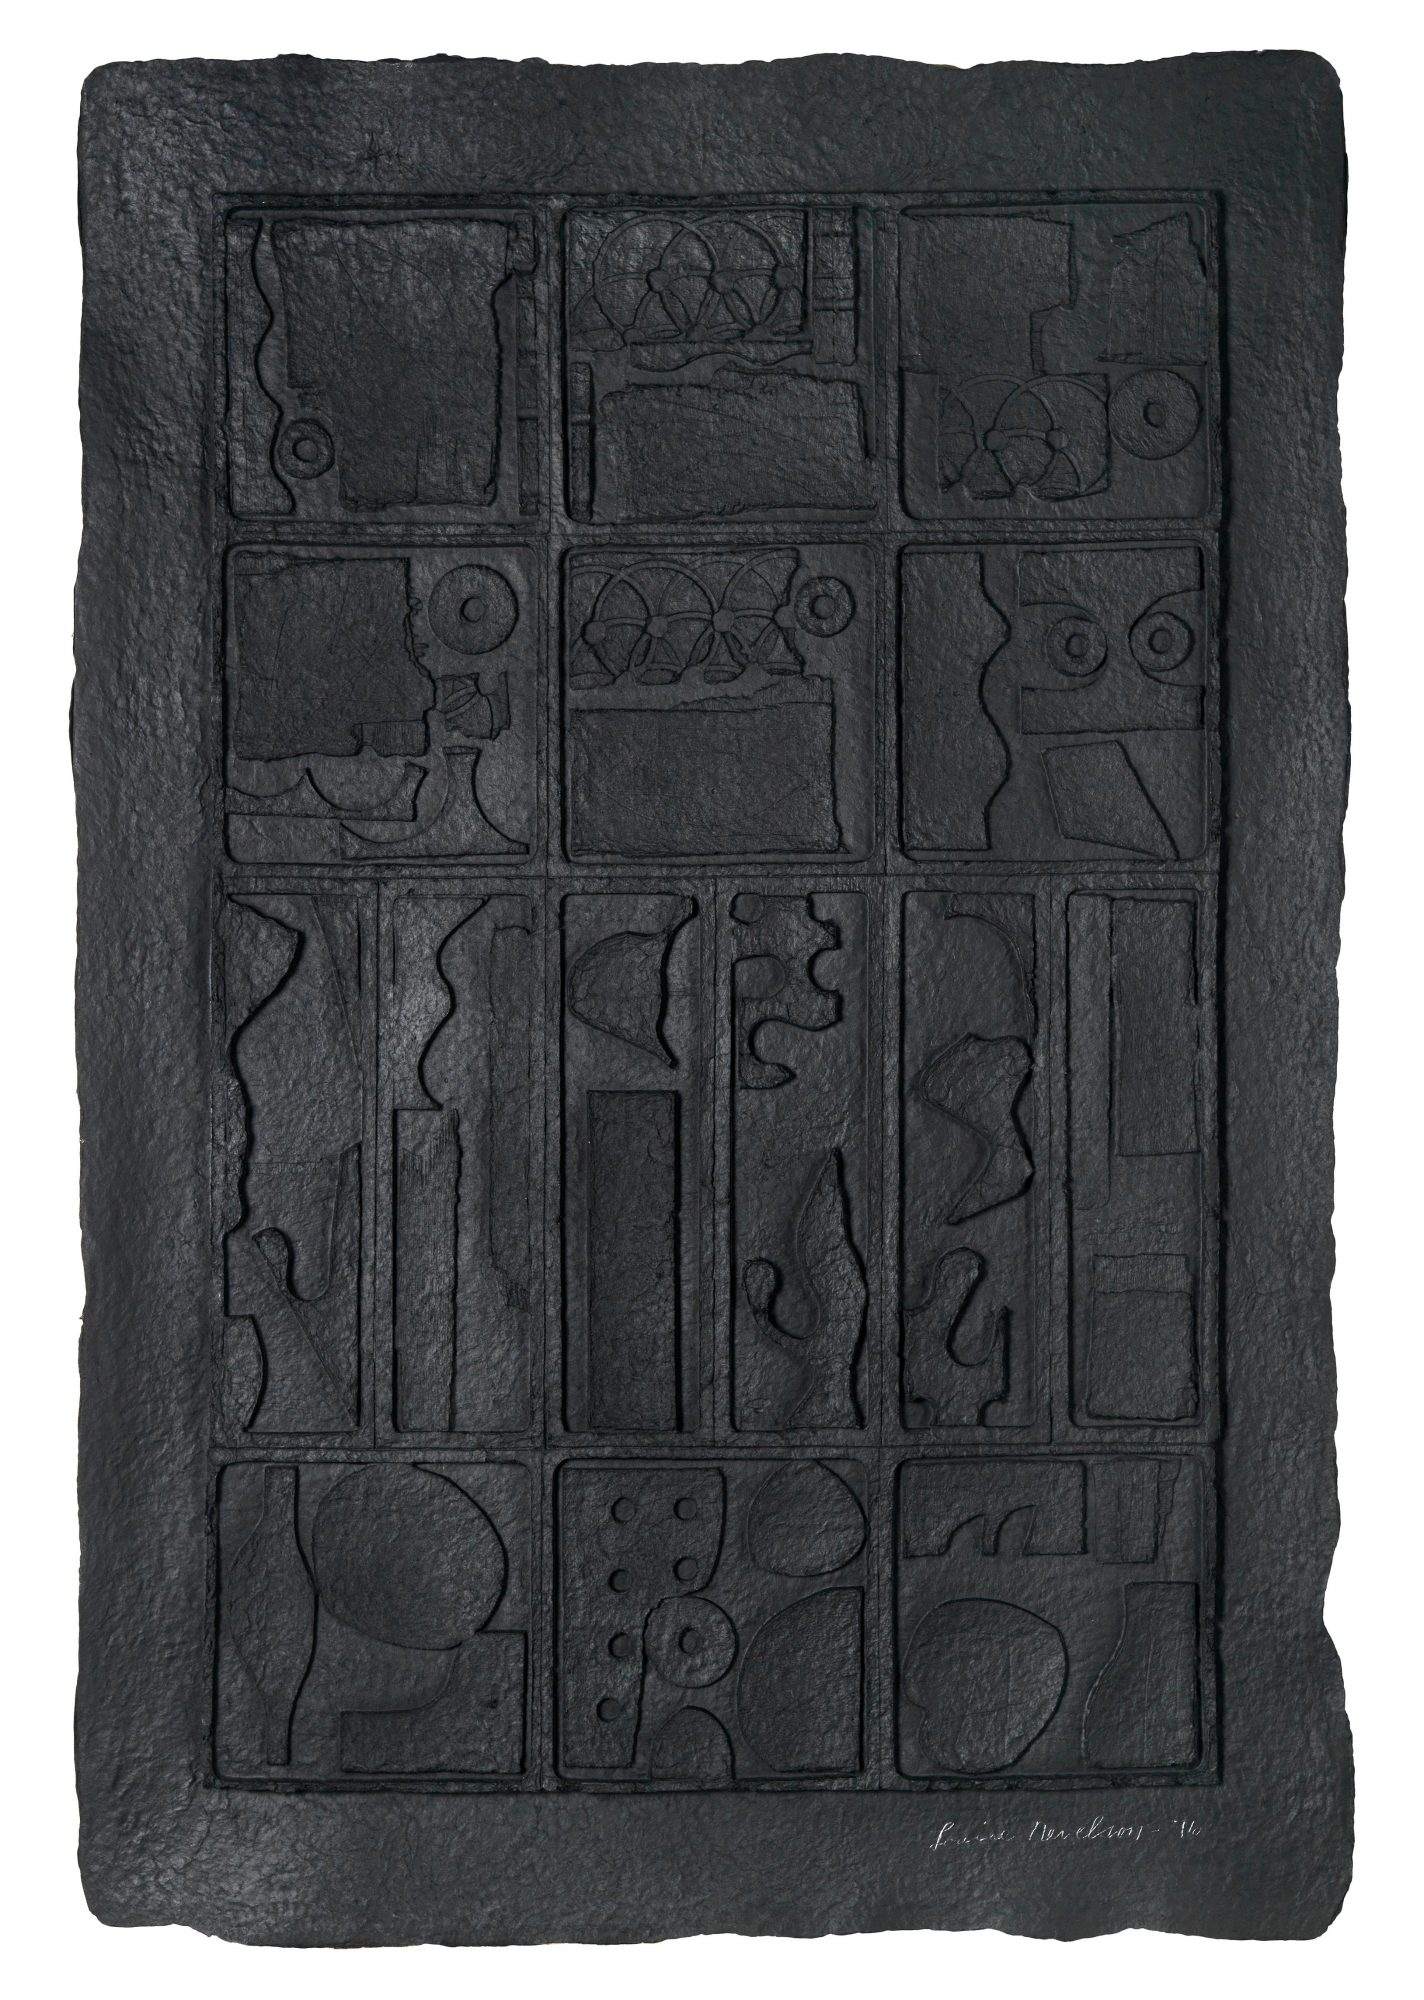 Louise Nevelson (American, 1899–1988) Moon Garden, 1976. Black cast paper, 32 x 21 1/2 in. Gift of Michael Dively, Class of 1961, 94.2.1